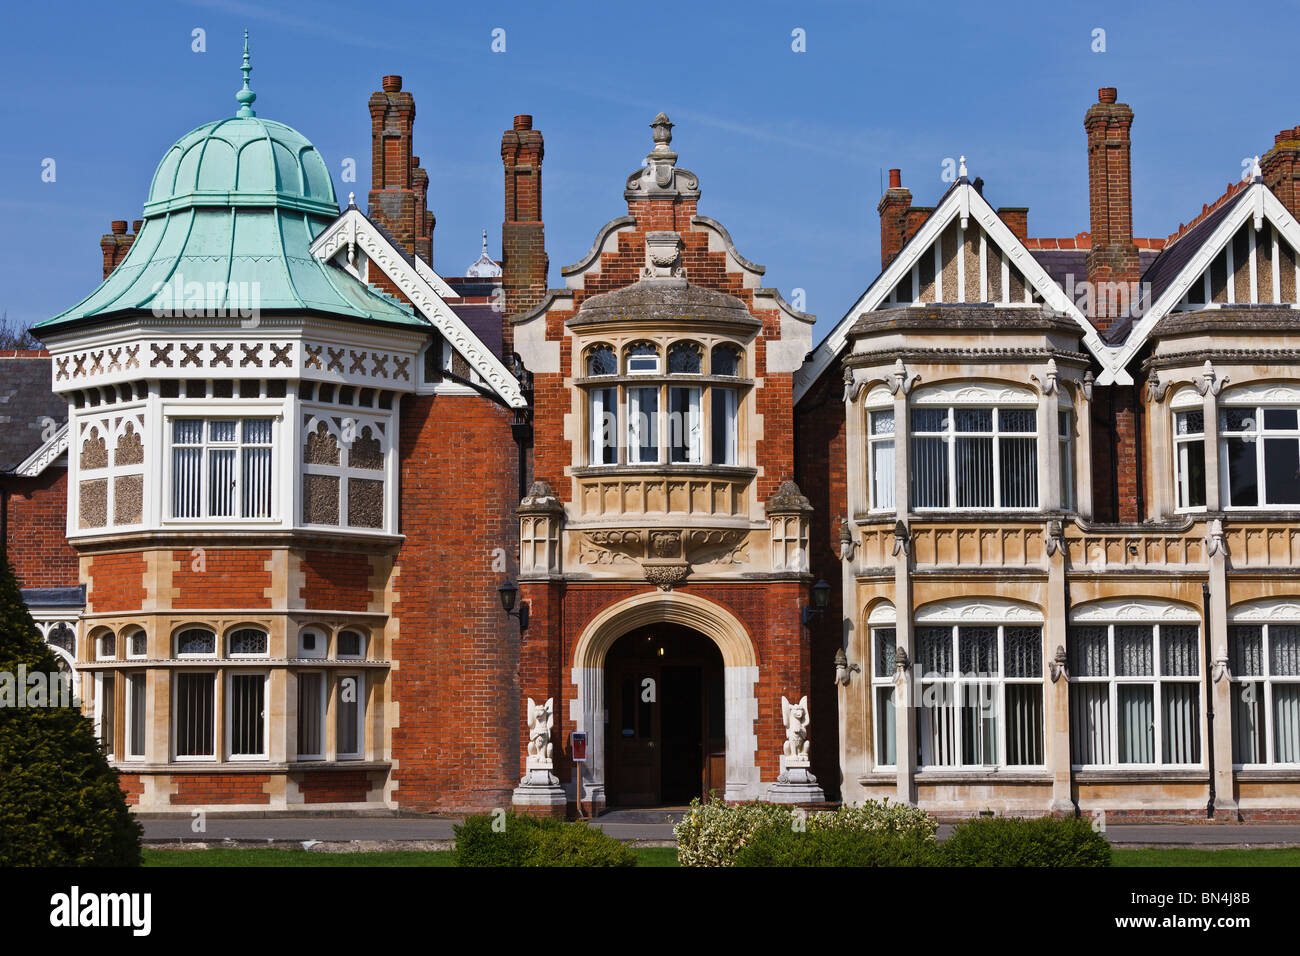 Bletchley Park in Milton Keynes, home of the World War II code breakers. Stock Photo